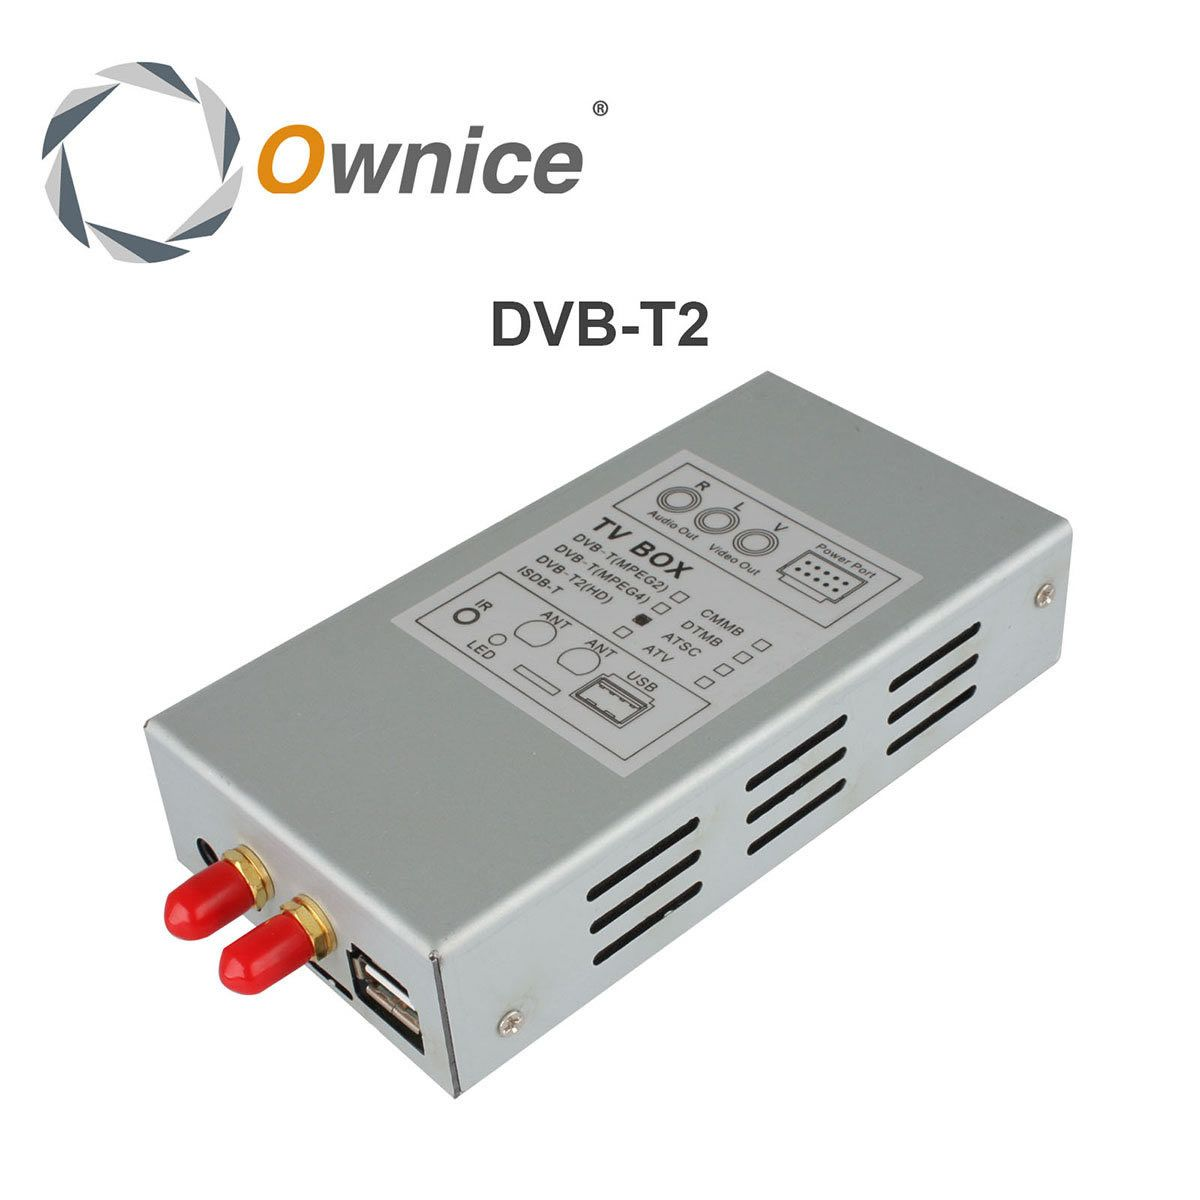 Special DVB-T2 Digital Box for Ownice Car DVD Player For Russia Thailand Malaysia area. The item just for our DVD